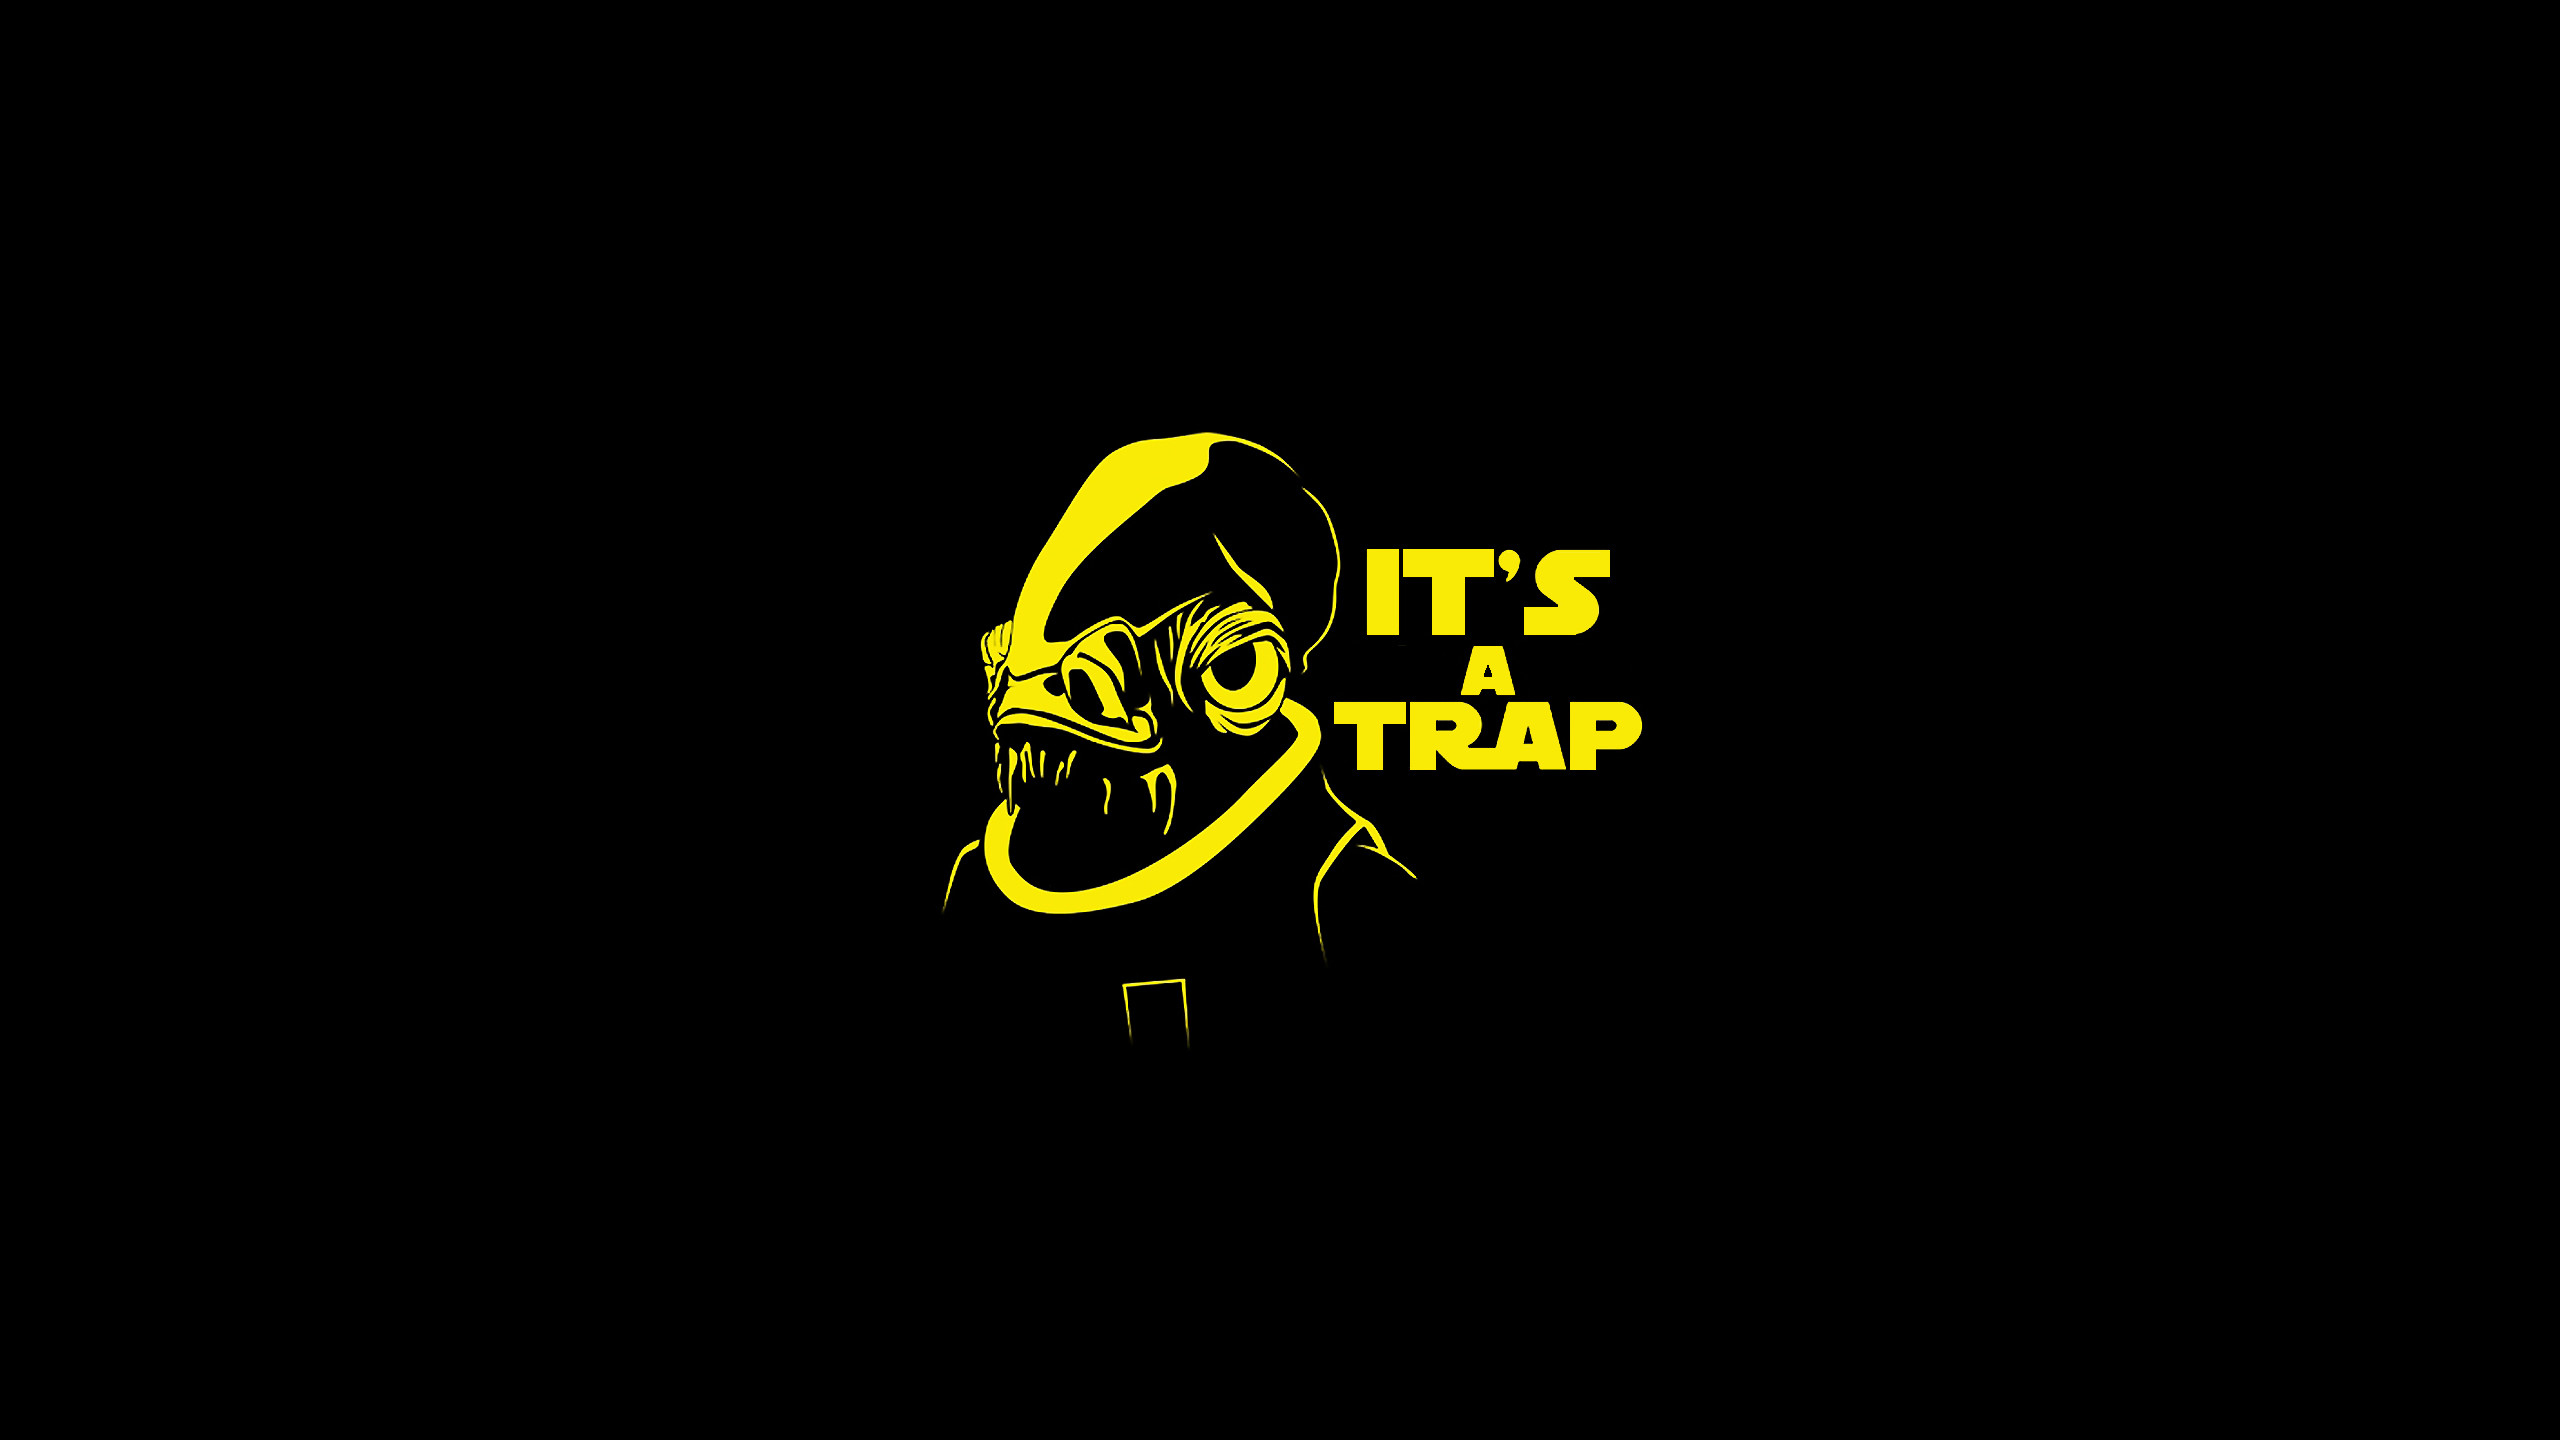 trap music wallpapers (79+ images)